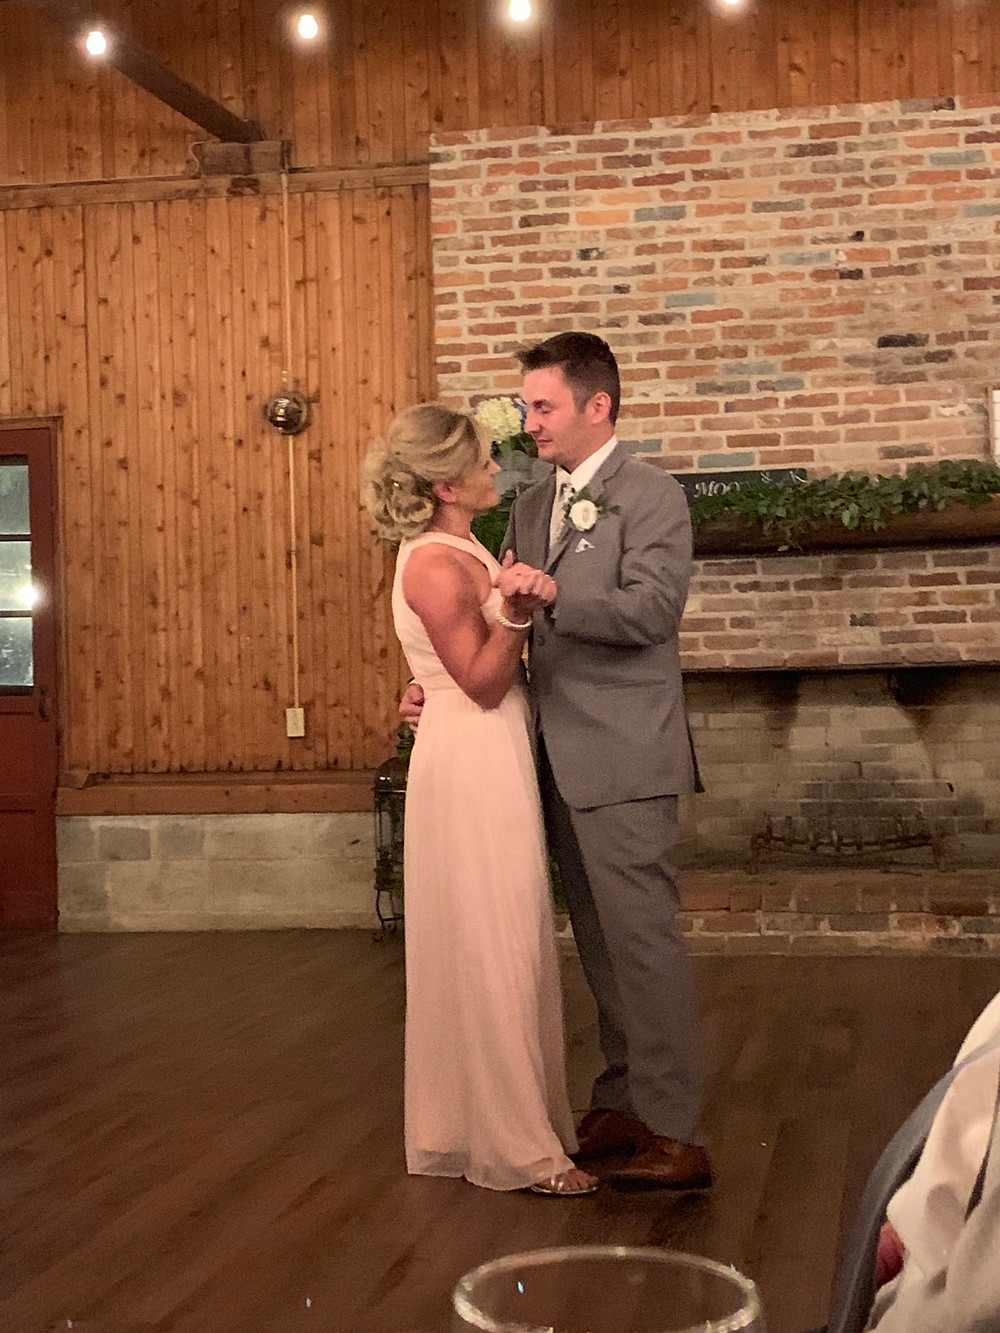 Mother and son first dance at a wedding